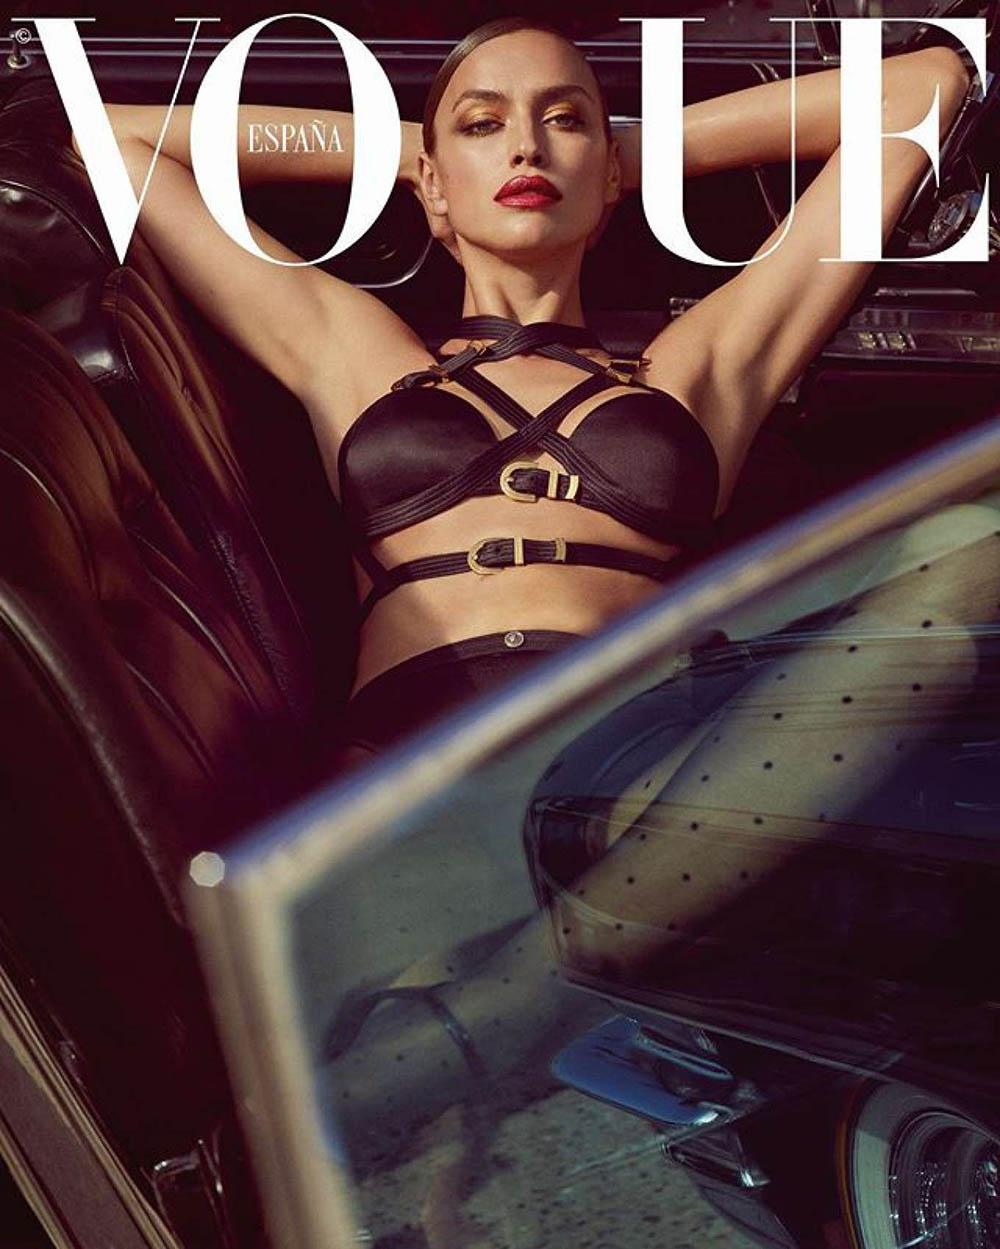 Adriana Lima and Irina Shayk cover Vogue Spain August 2019 by Luigi & Iango